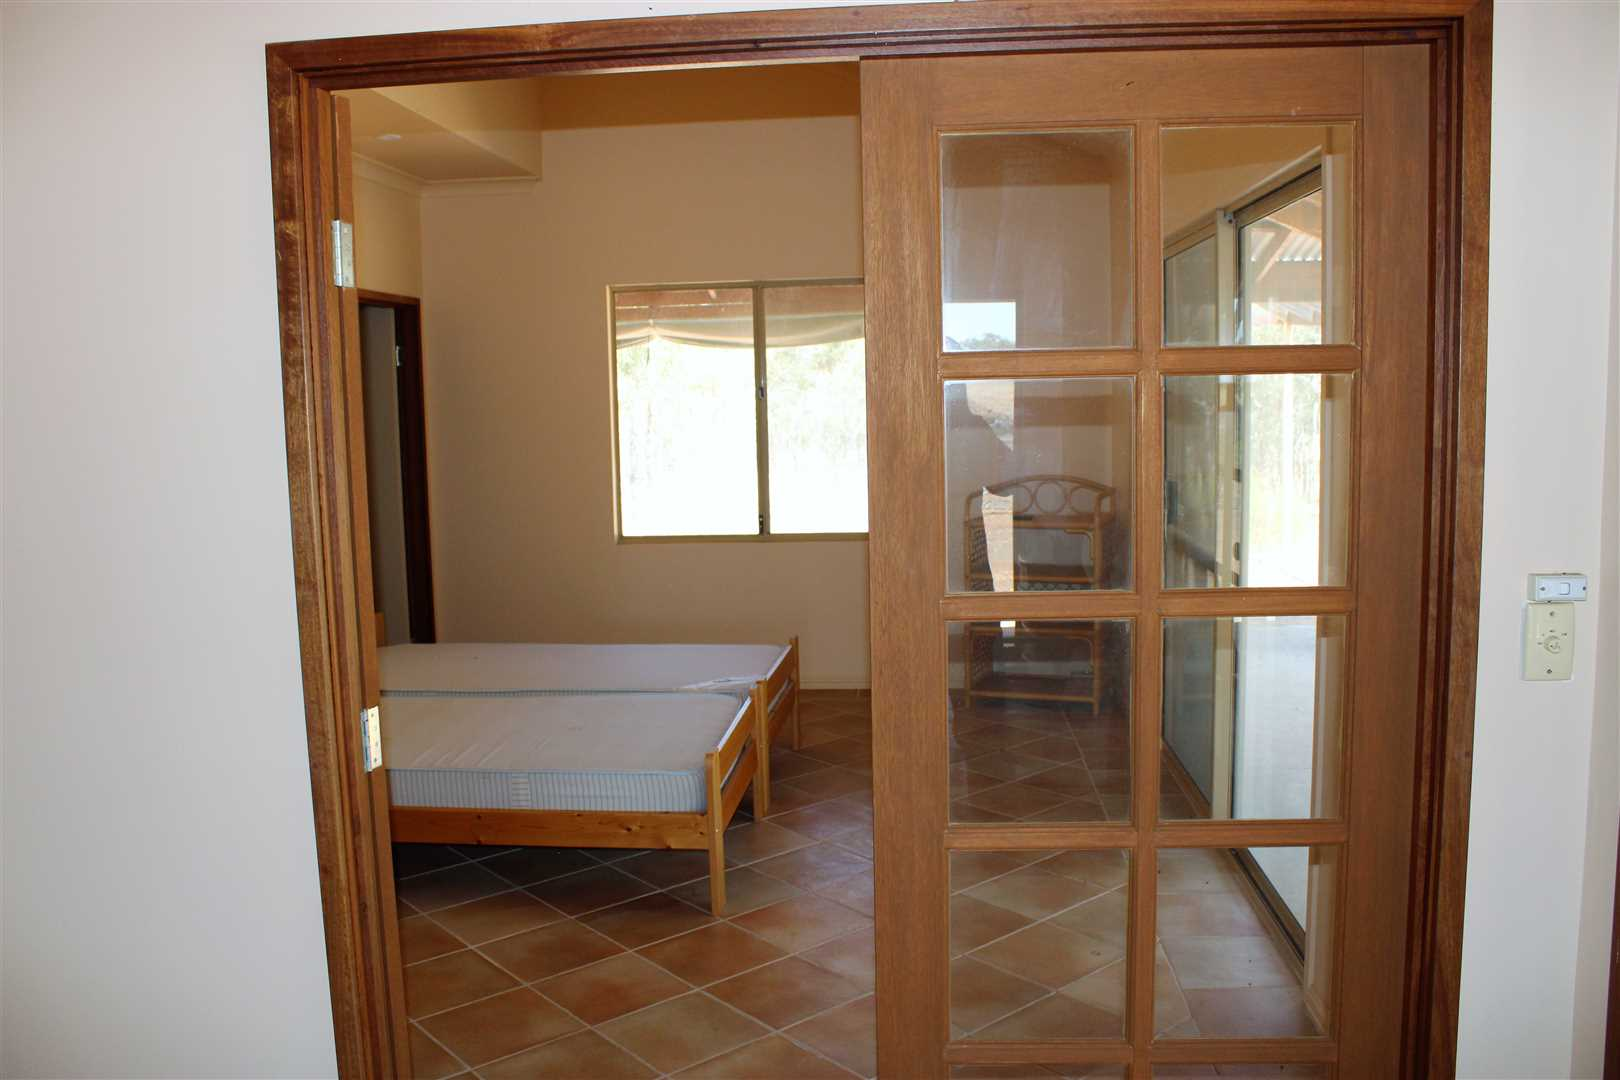 1 Bedroom, with walk-in robe and ensuite'